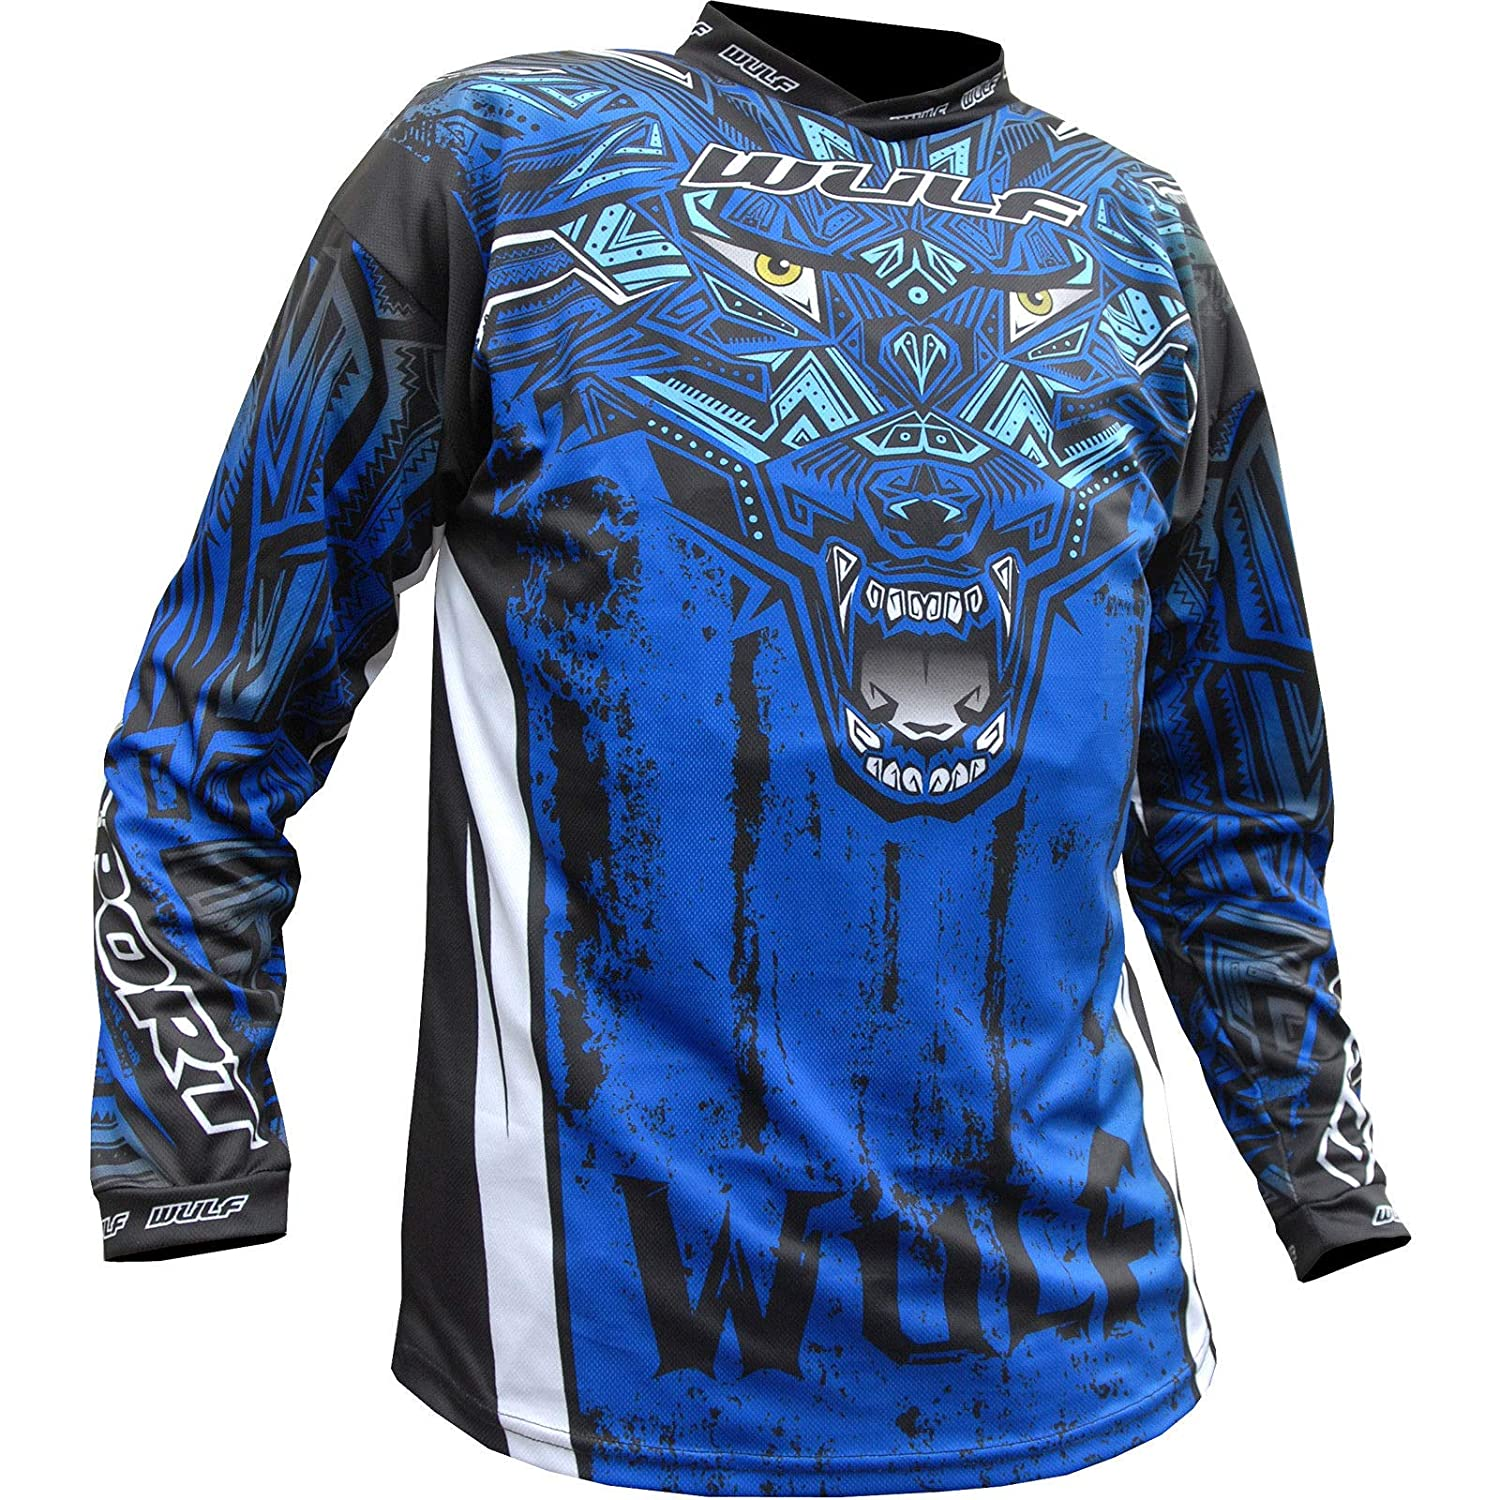 Shirt M /& Pants 32 Wulfsport AZTEC Motorbike Off Road Quad Adult MX Sports Jersey and Trouser Suit Motocross Clothing Black